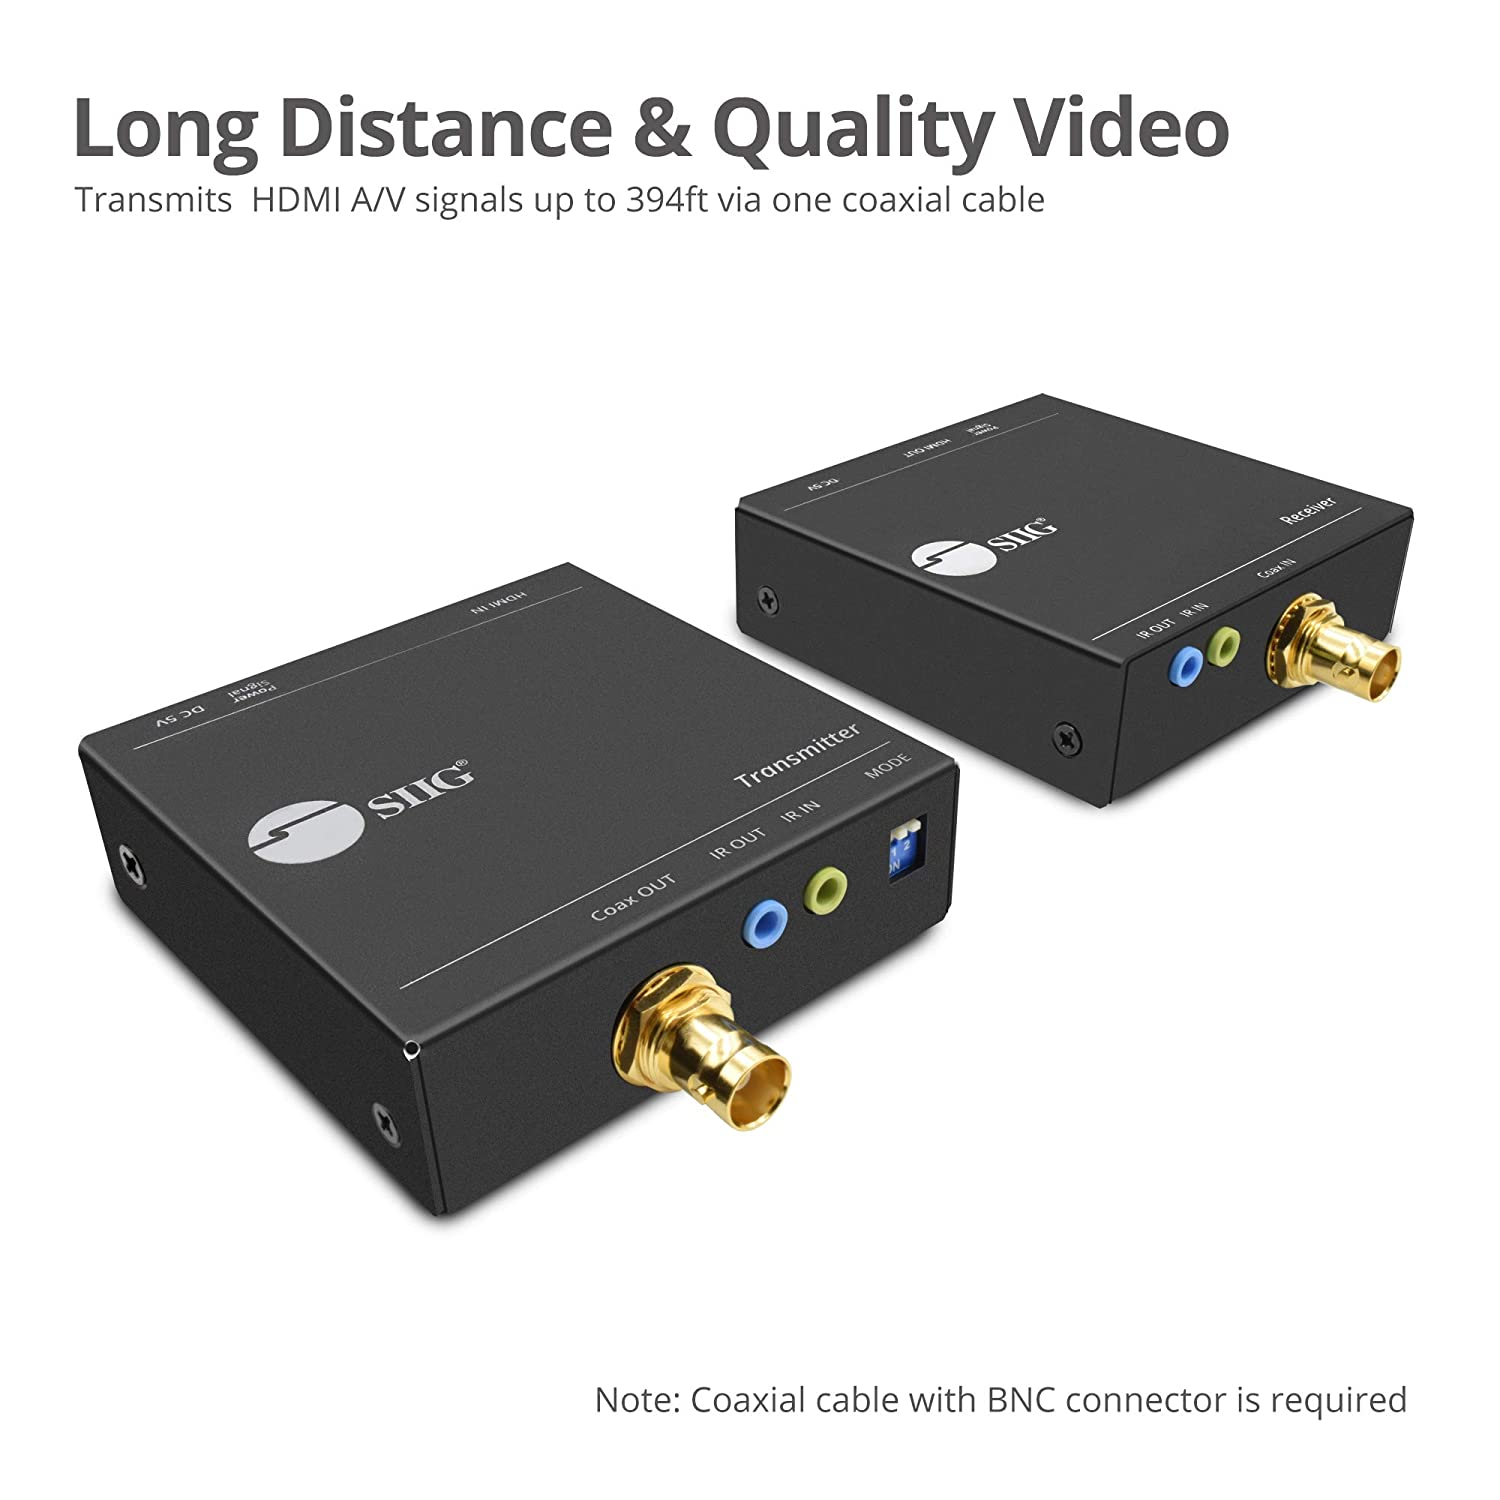 Amazon.com: SIIG HDMI Extender Over a Coaxial Cable (RG59/RG6/RG7) with IR Remote Control - 120m 394ft @1080p 60Hz HDMI Over Coax, Bi-Directional IR, ...